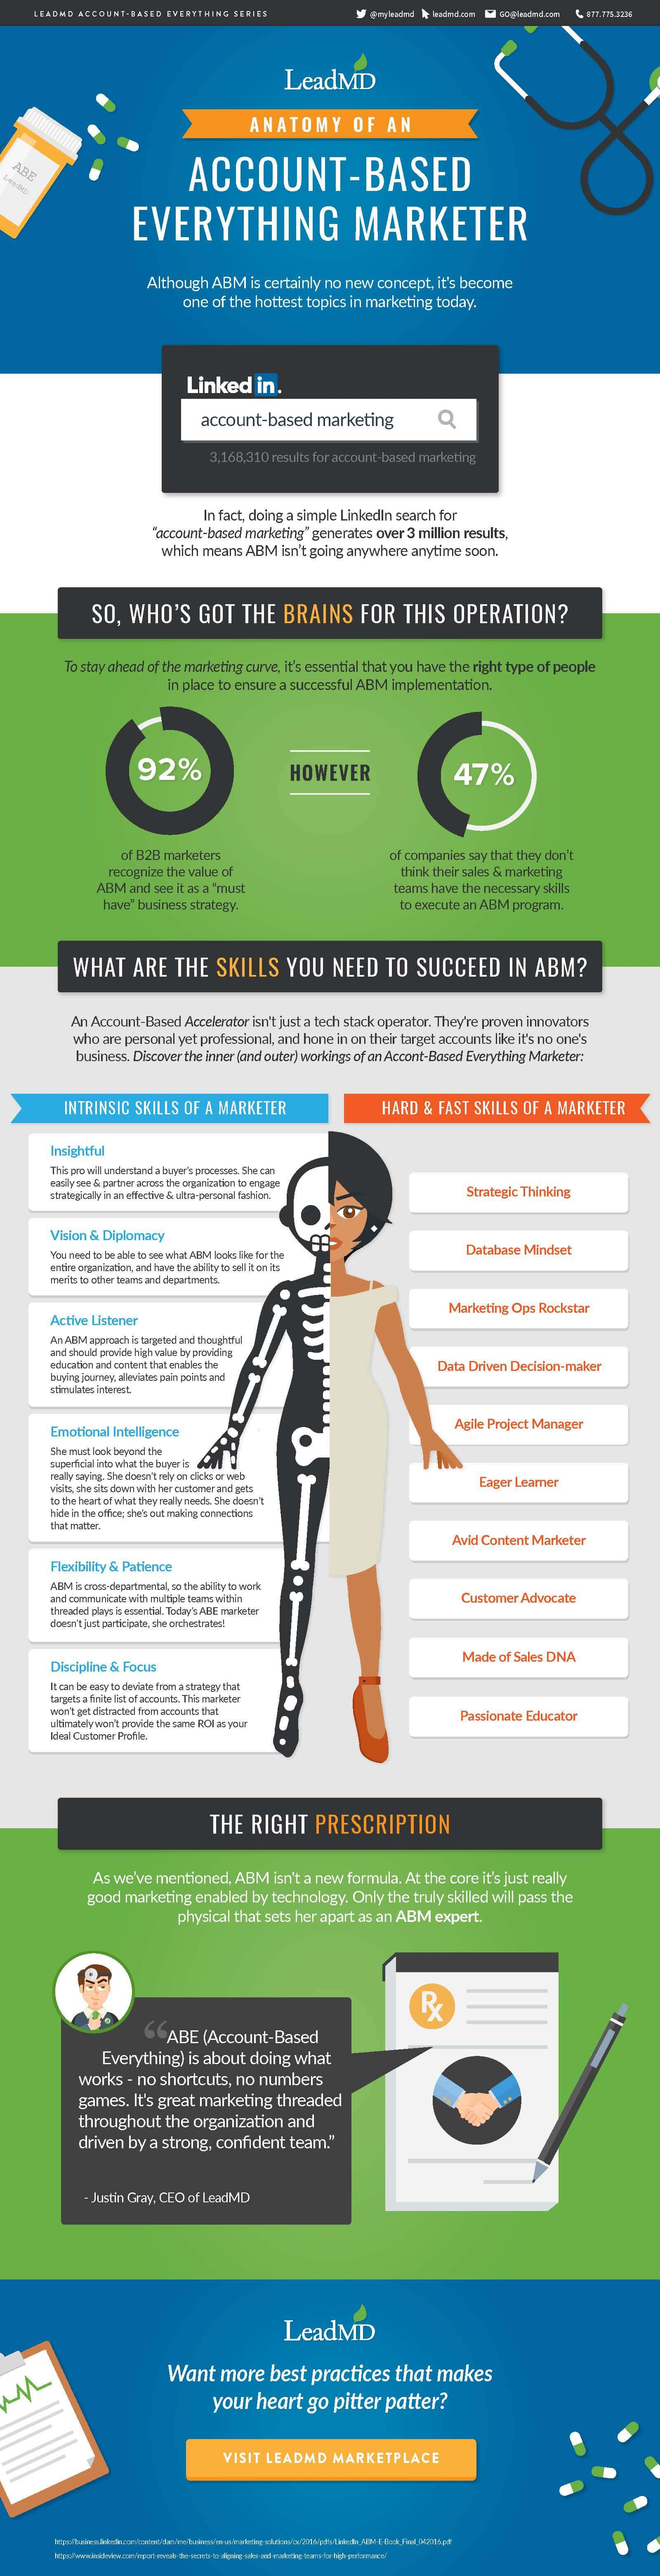 Infographic Anatomy Of An Account Based Everything Marketer Leadmd